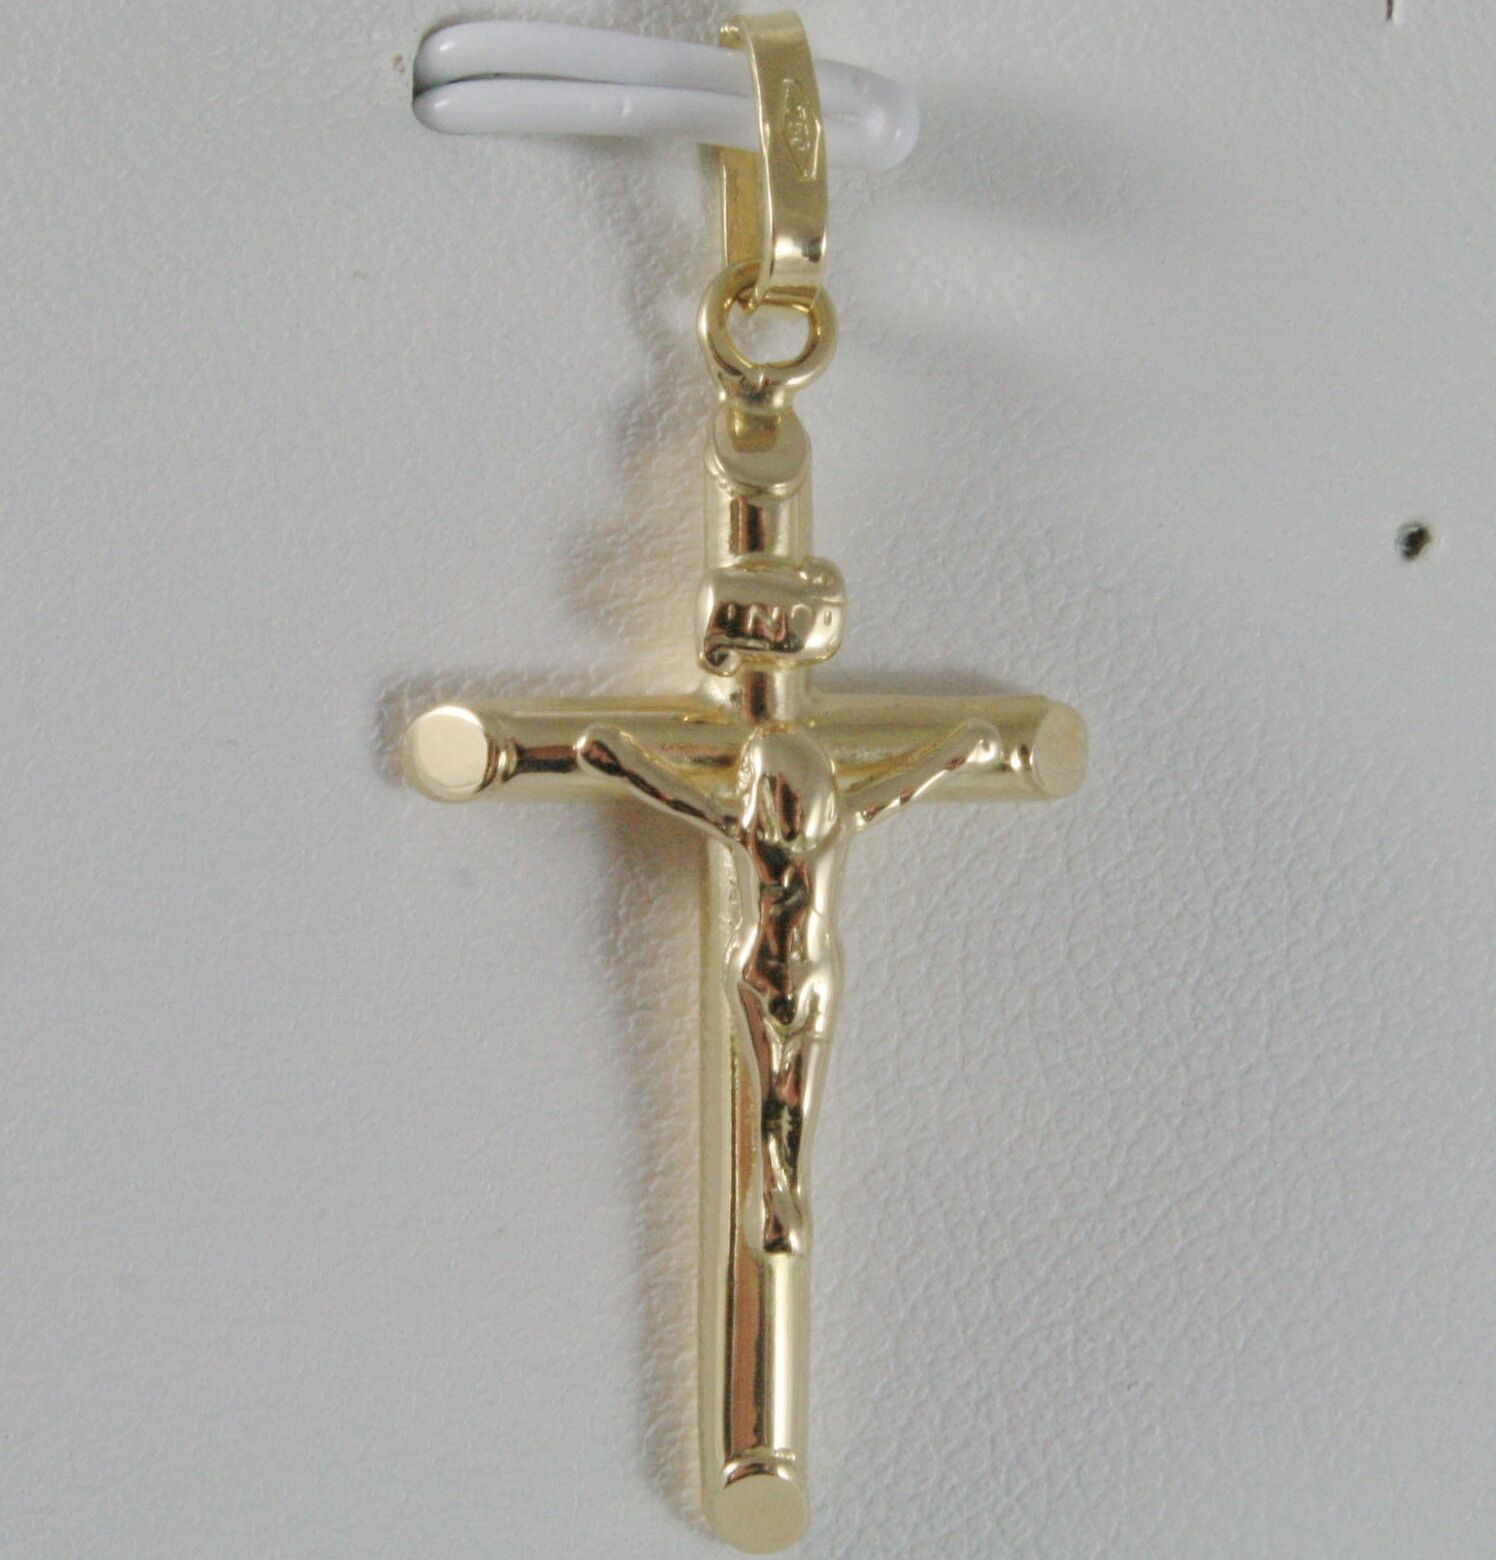 18K YELLOW GOLD CROSS WITH JESUS, ROUNDED TUBE, SHINY 1.42 INCHES, MADE IN ITALY